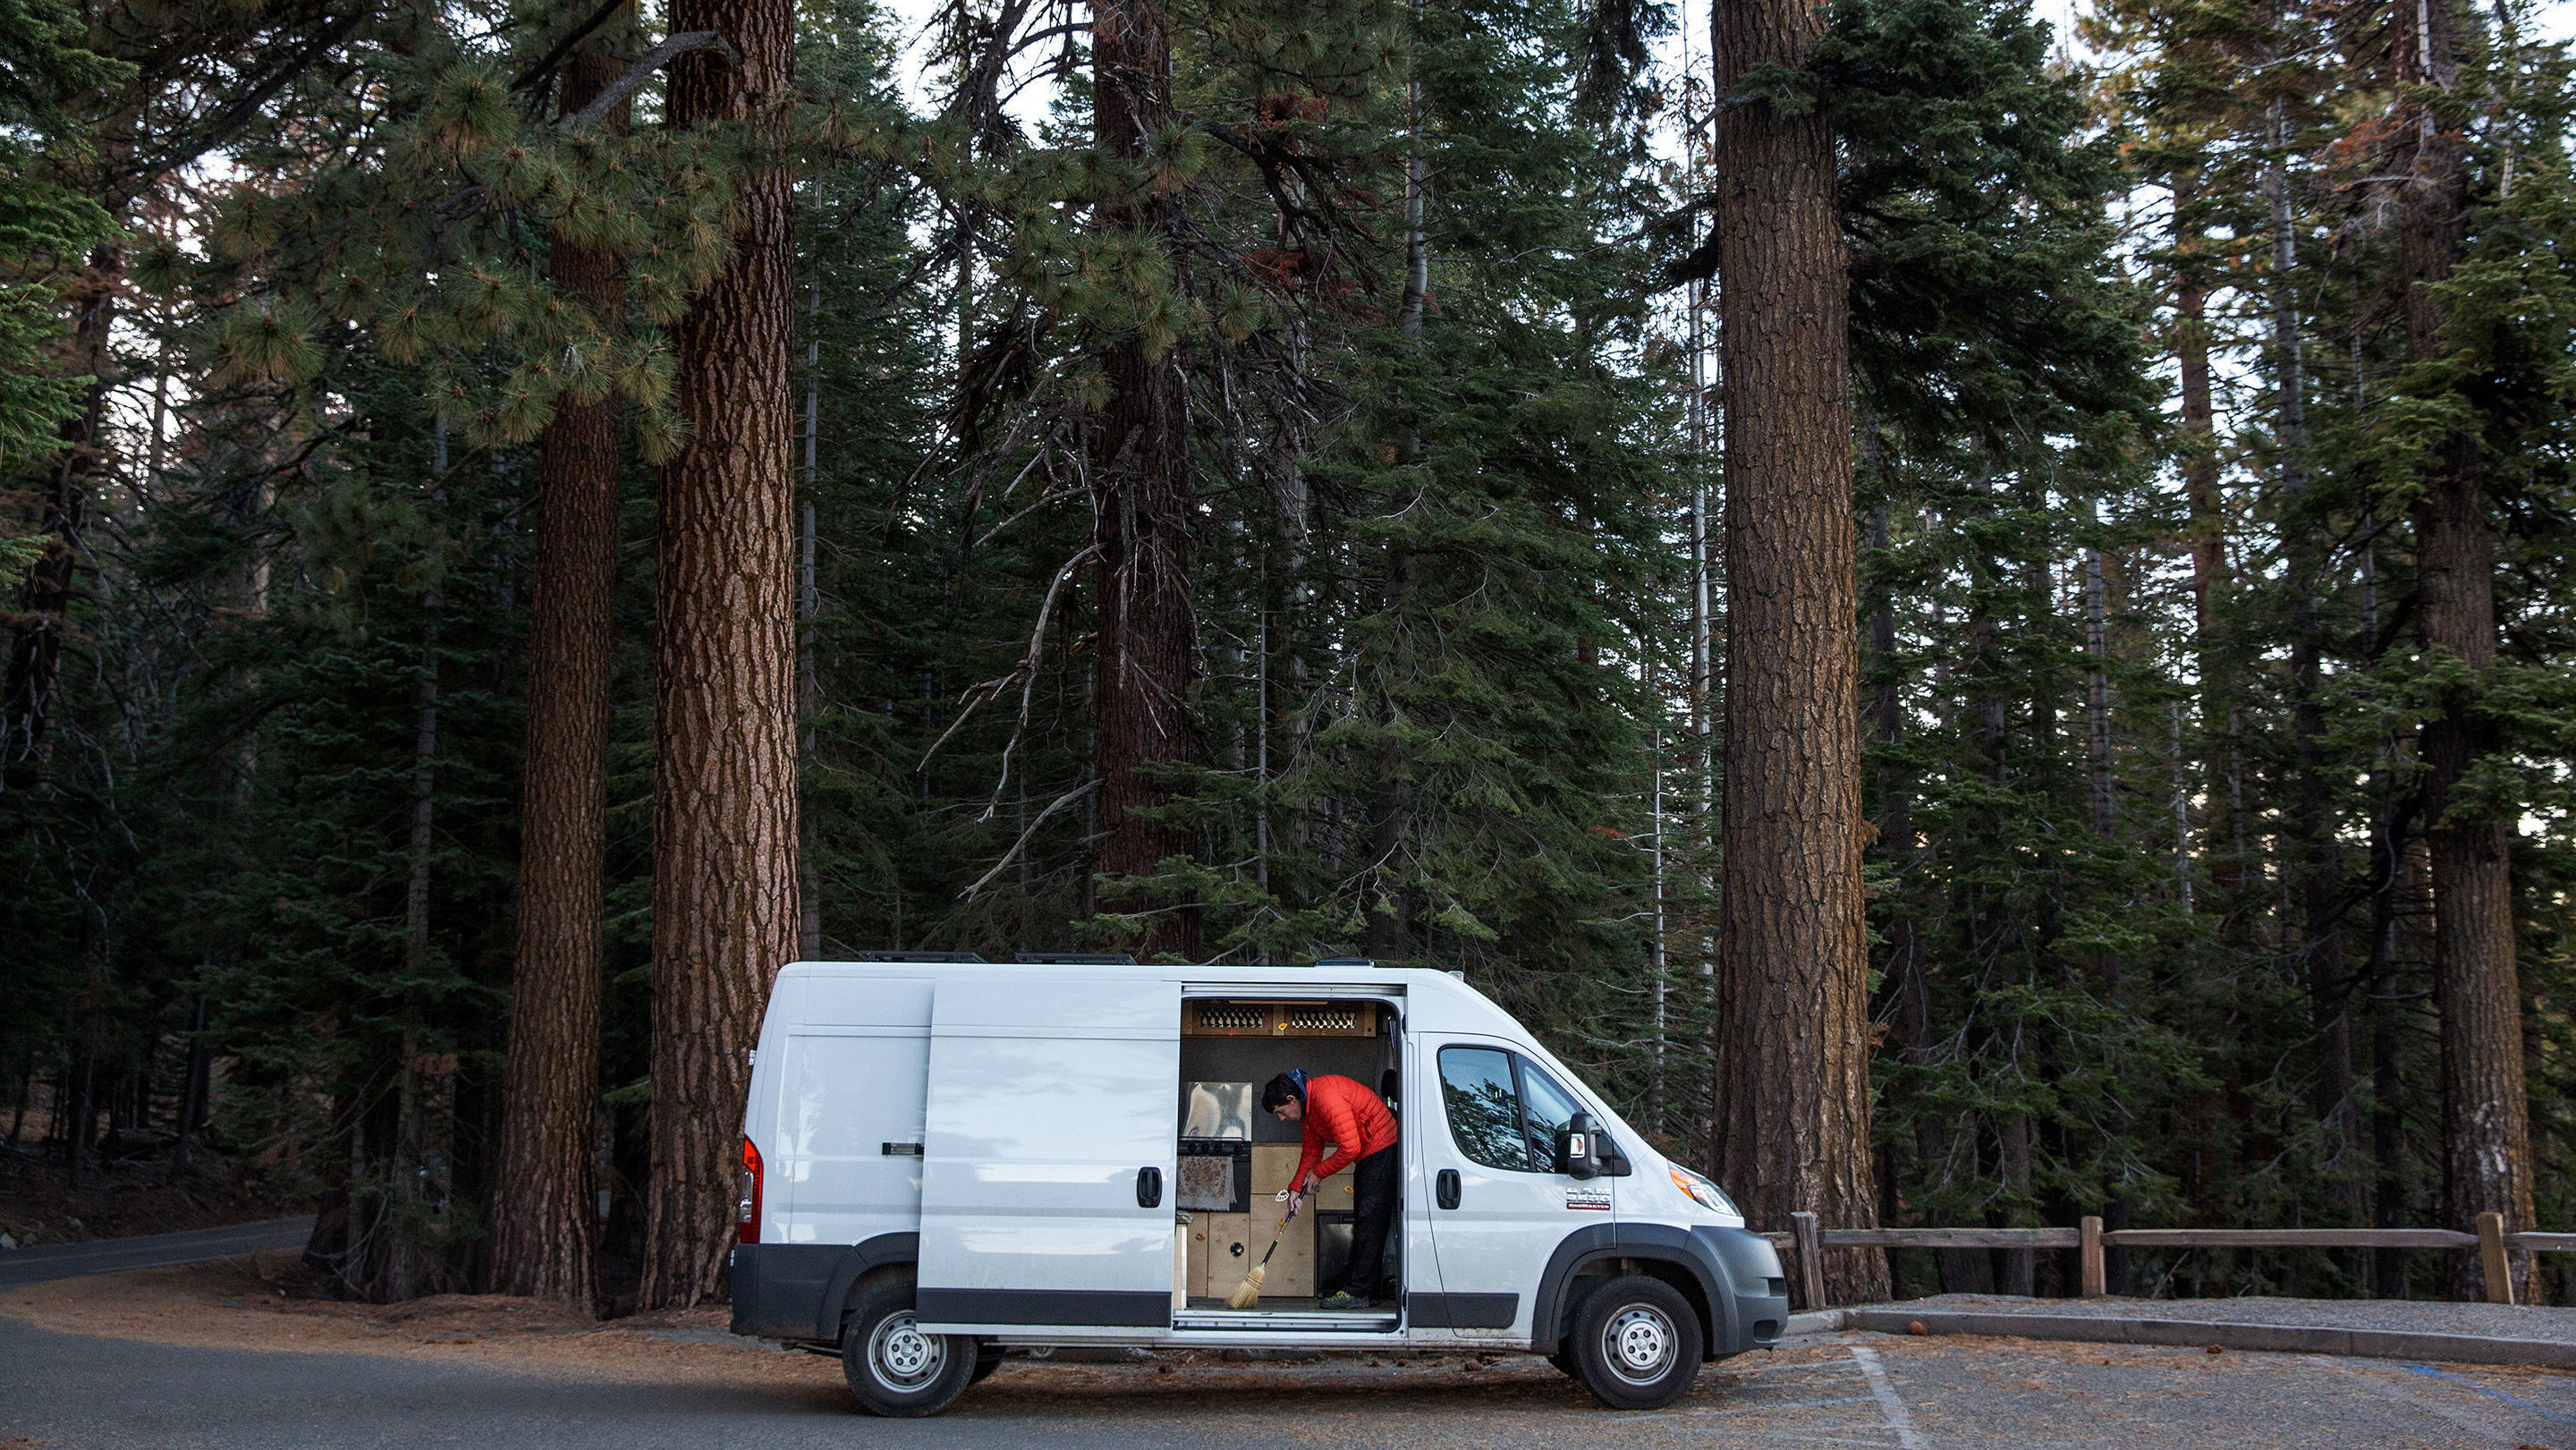 Alex Honnold cleaning his van in Yosemite National Park, California. (Photo by National Geographic/Jimmy Chin)